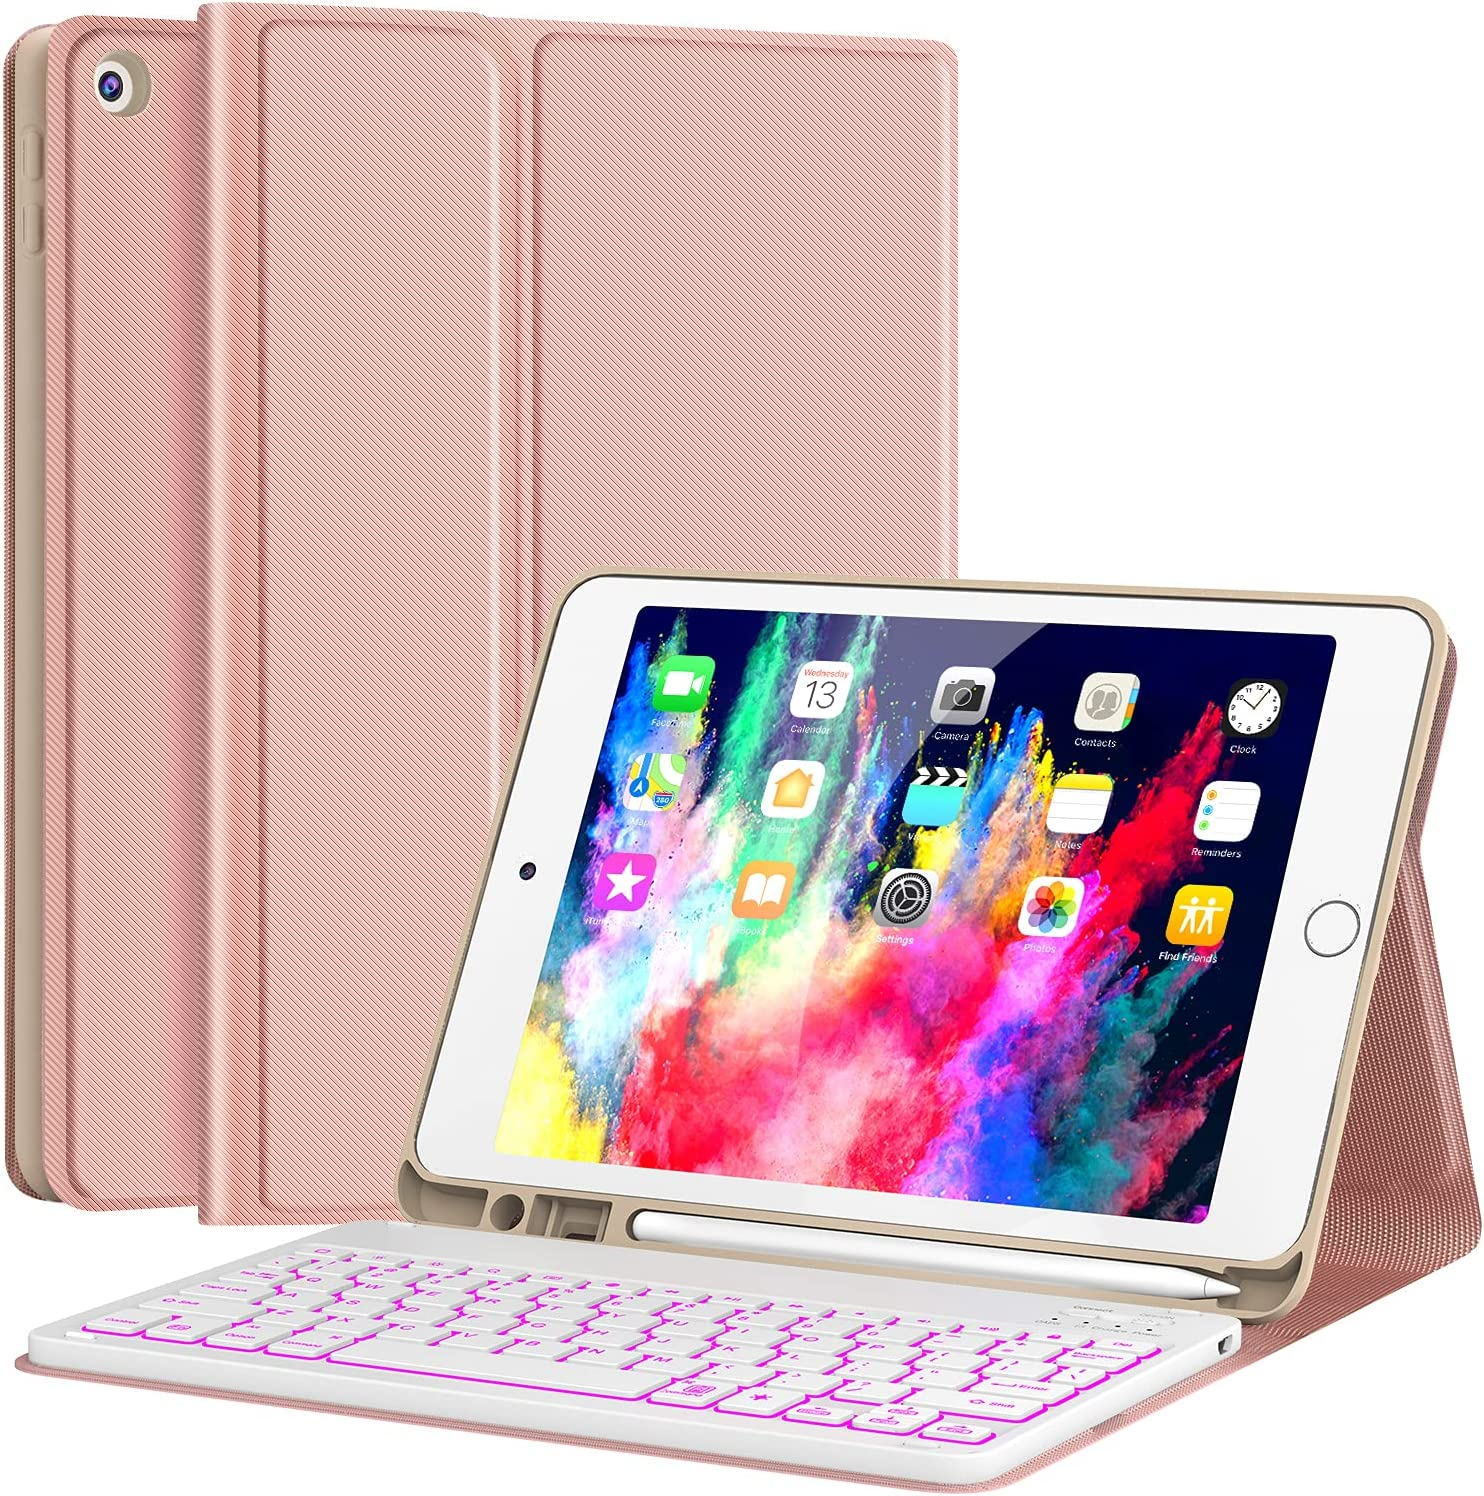 """Keyboard Case for iPad 9th Generation (2021)/8th Gen/7th Gen 10.2 Inch, CHESONA Detachable Wireless with Pencil Holder Stand Folio Keyboard Cover for New iPad 9th Gen/8th Gen/7th Gen 10.2"""", Rose Gold"""